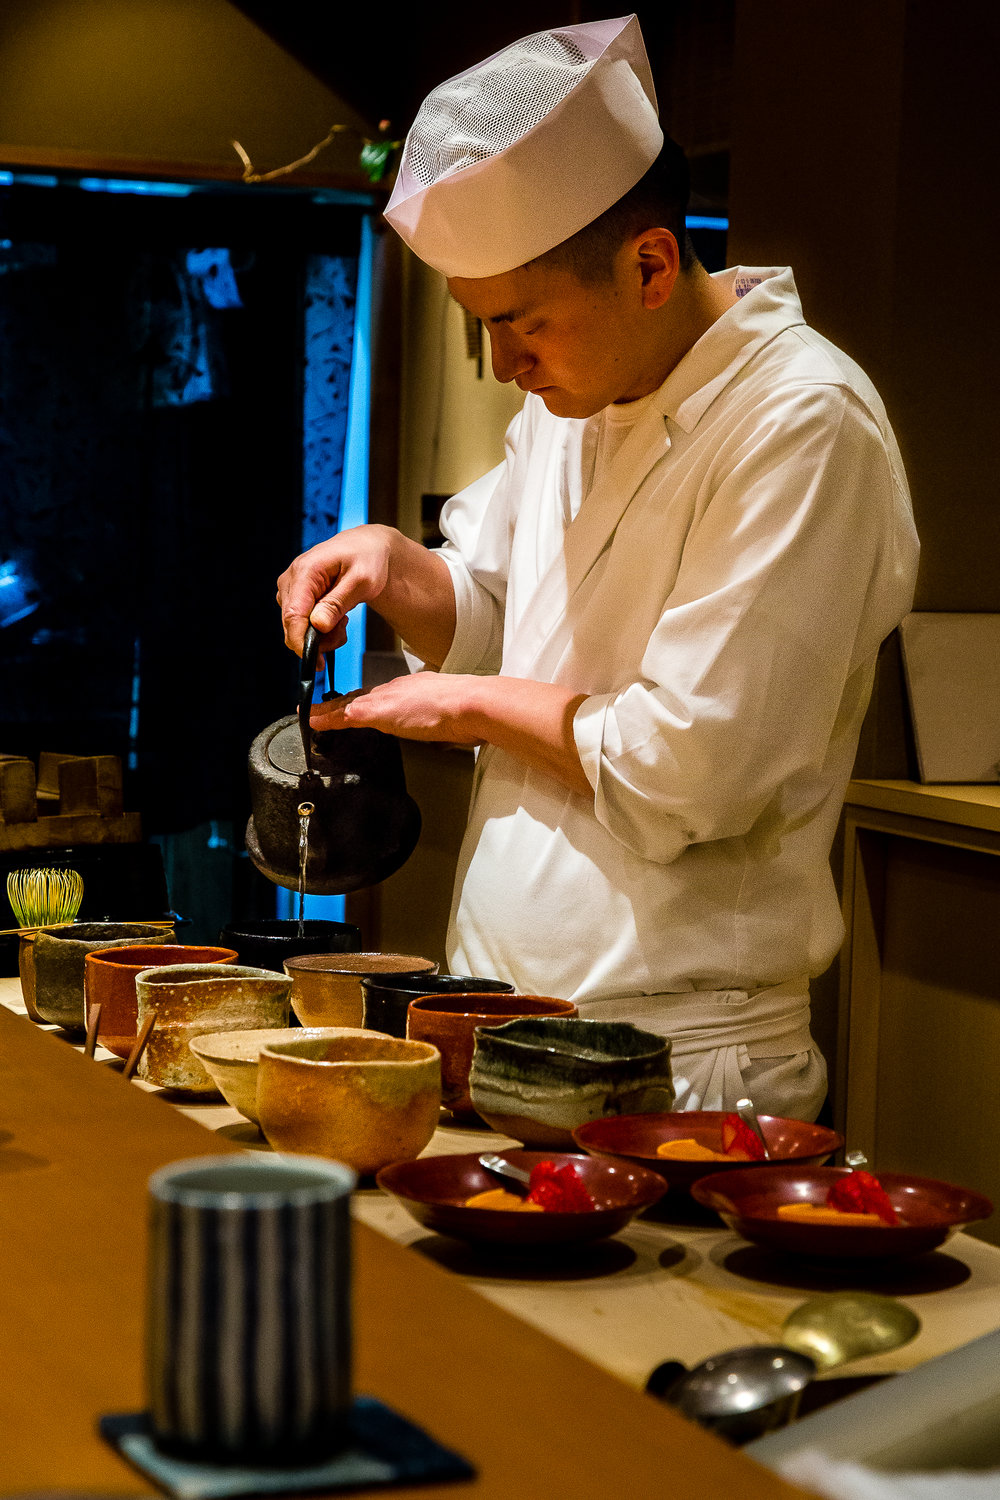 Ceremonial matcha is always a component of kaiseki in Kyoto. Look at those bowls !!